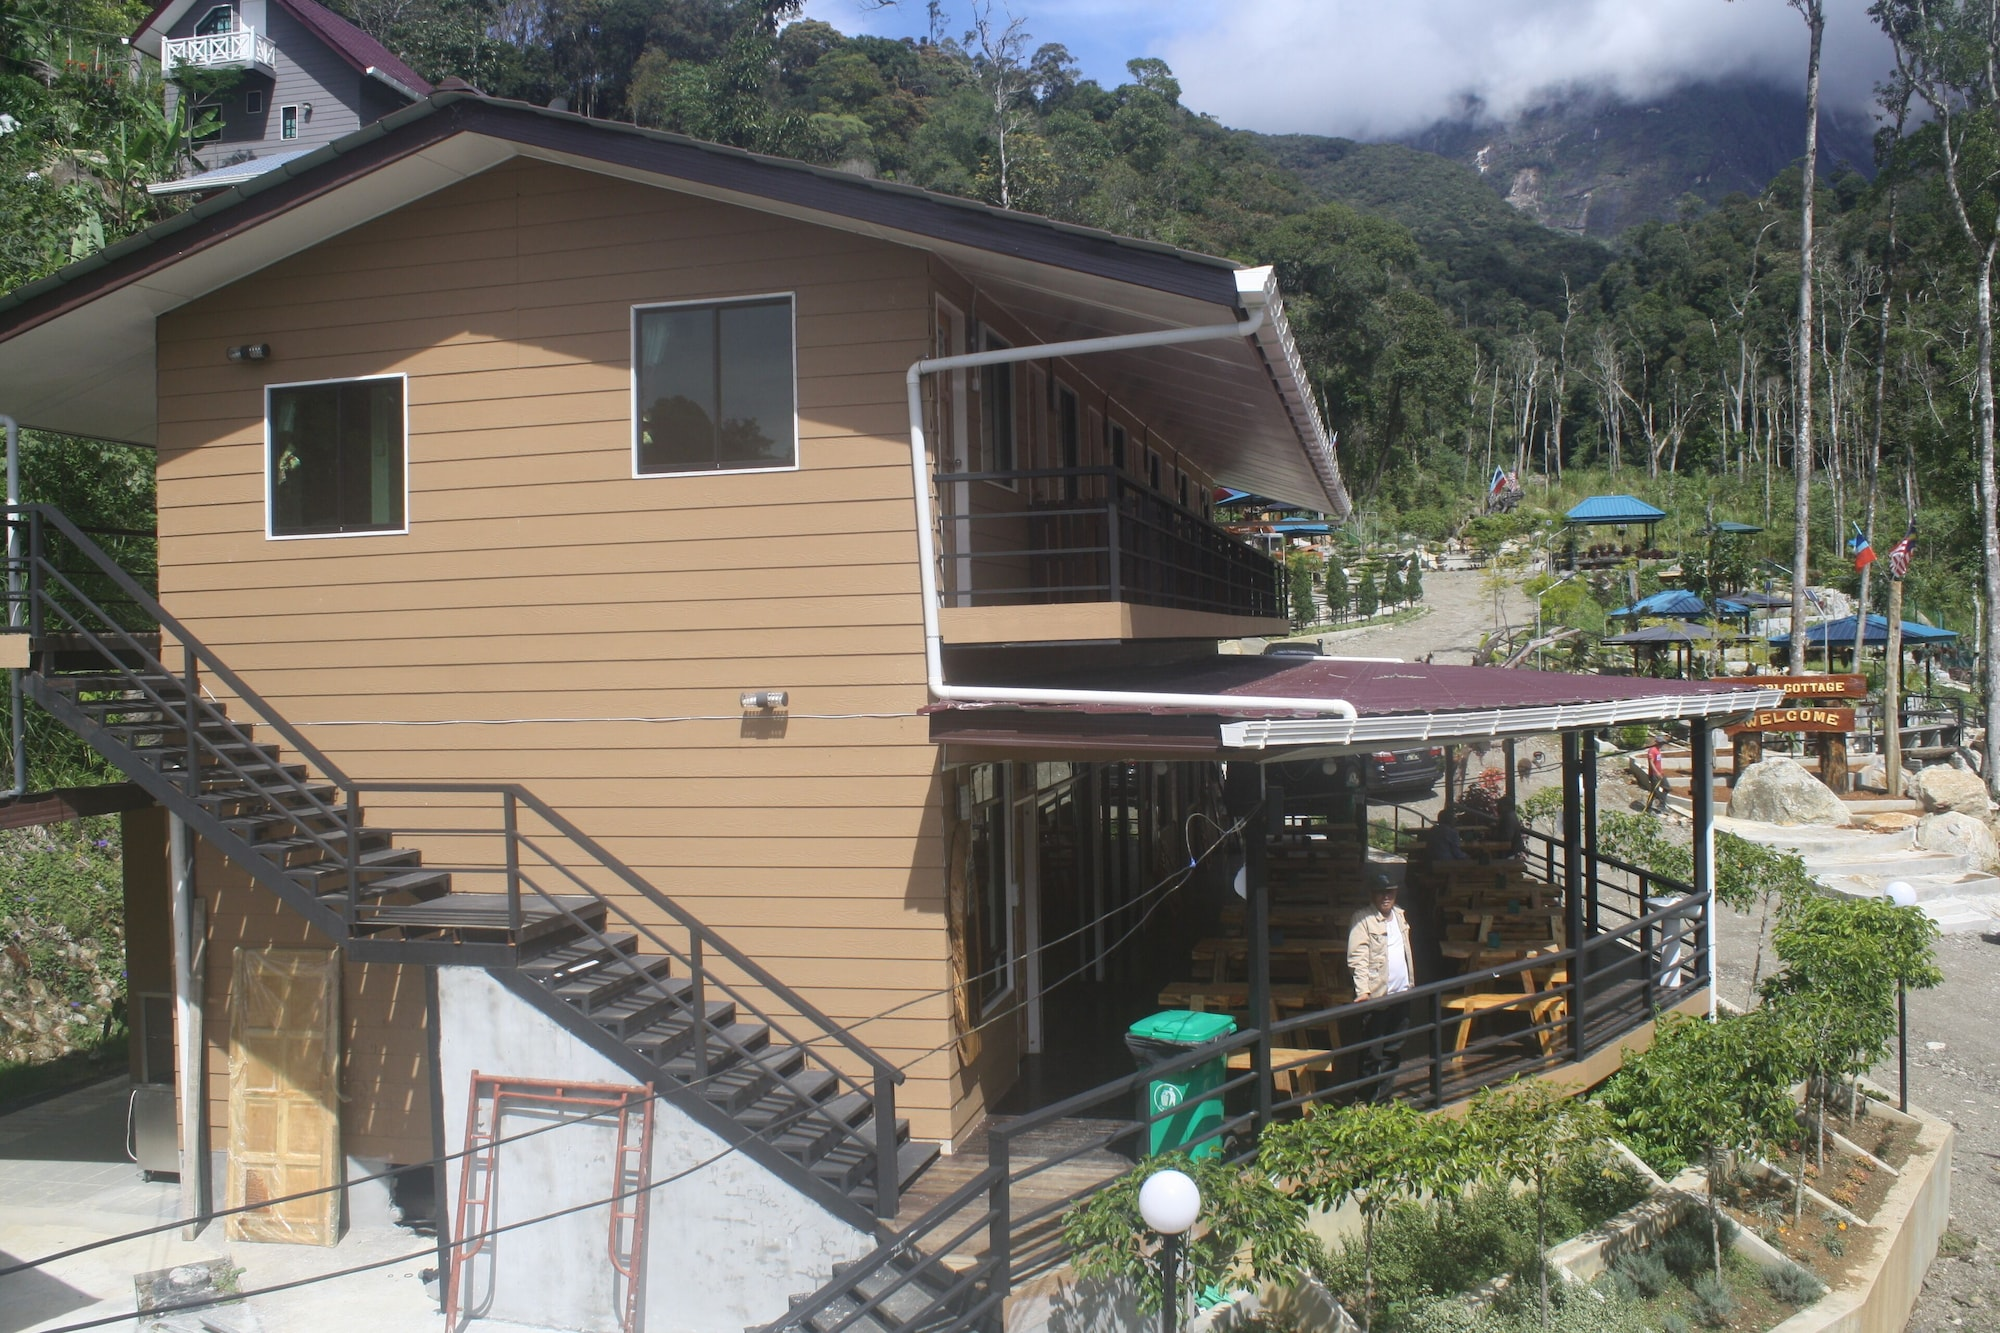 D'La Sri Cottage - Asia Camp, Ranau